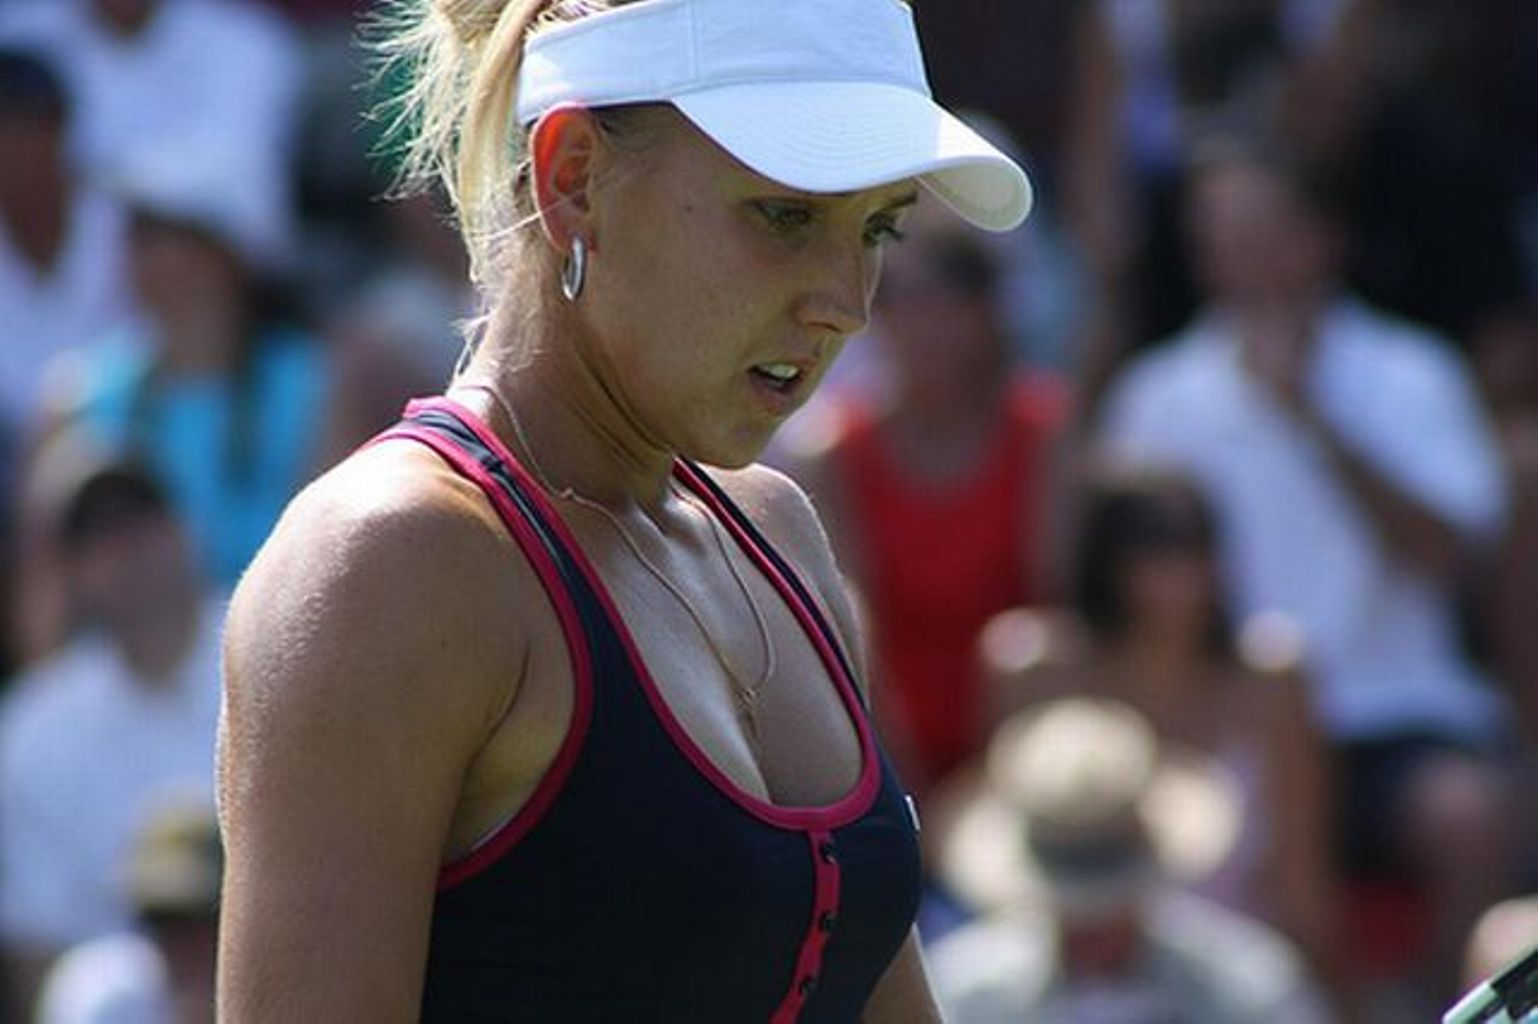 elena vesnina hot photos - photo #4